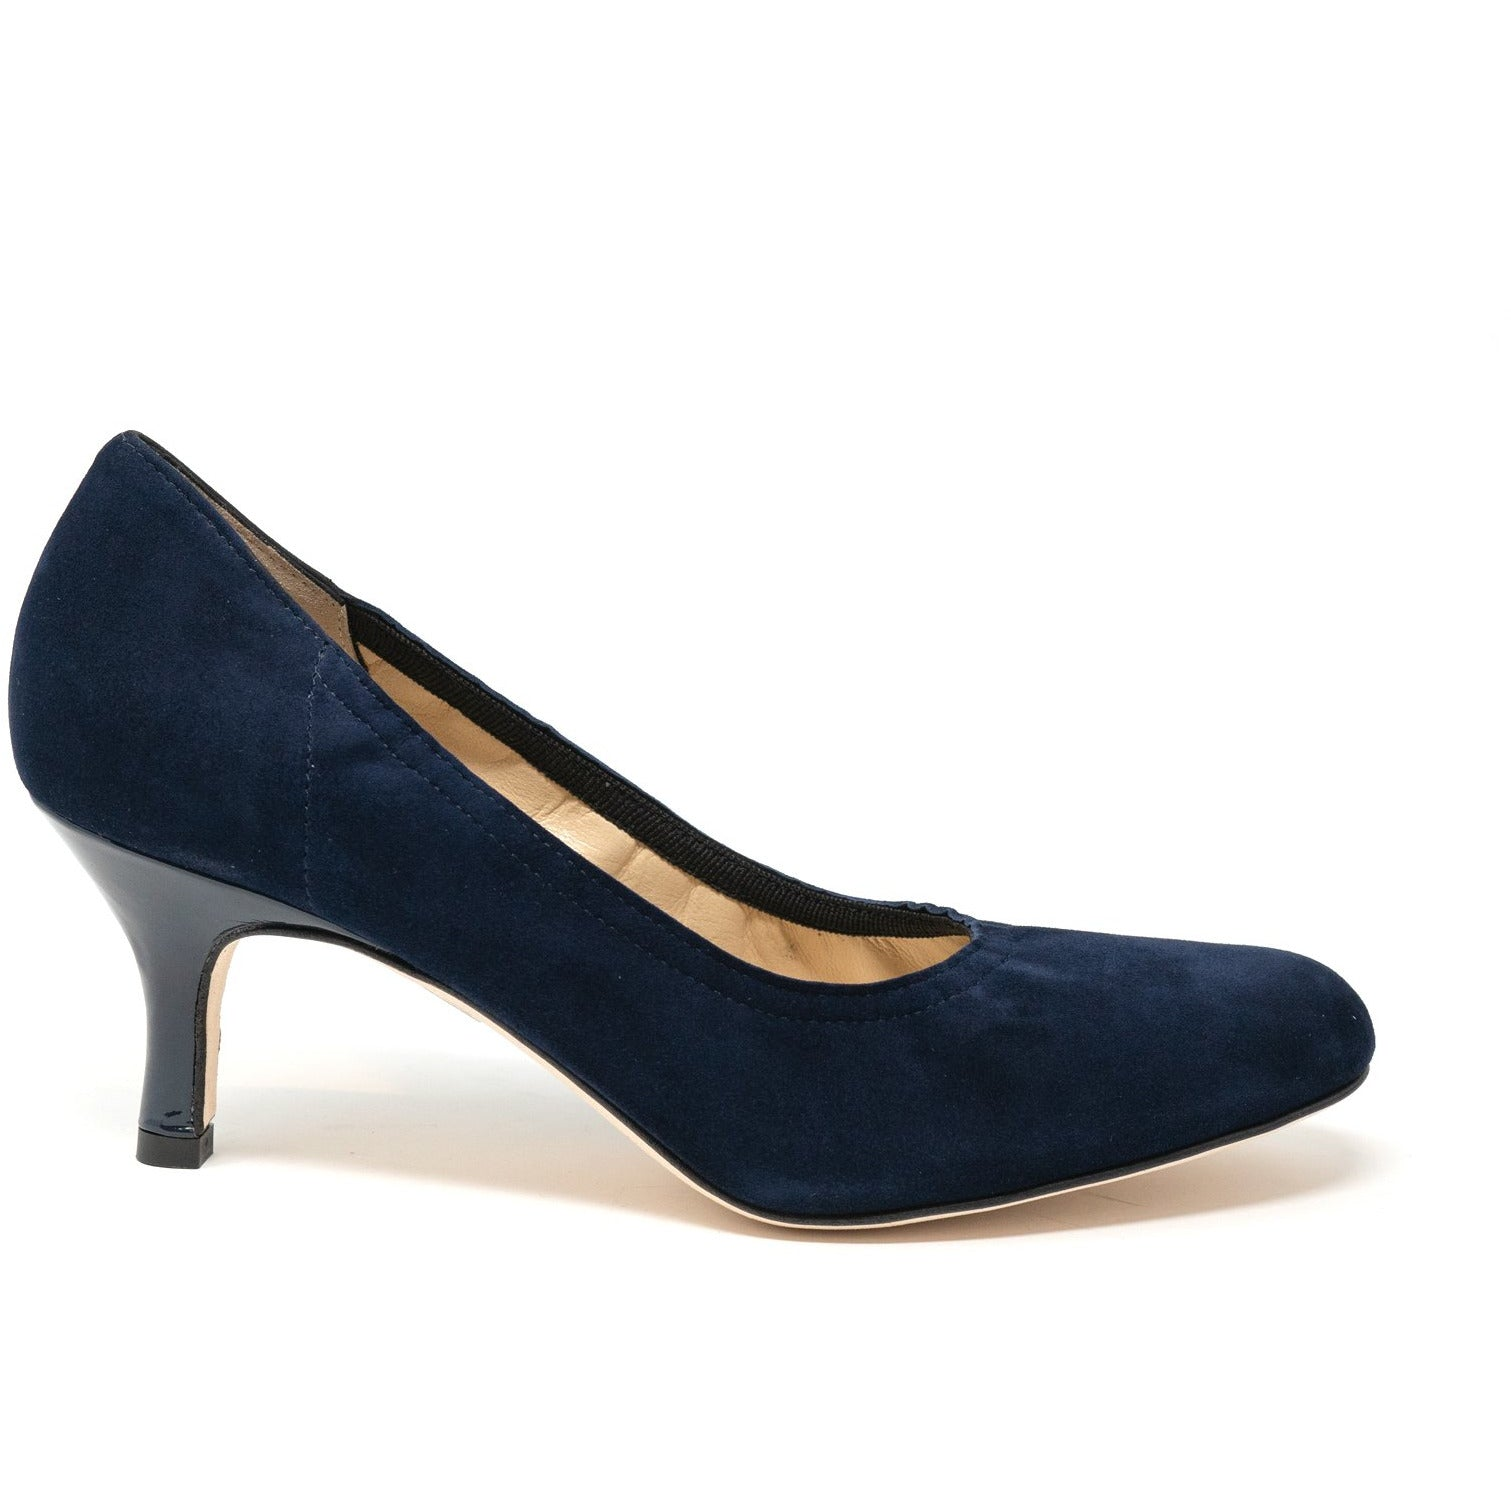 MIL461 55T Women Pumps - New Spring Summer 2020 Collection